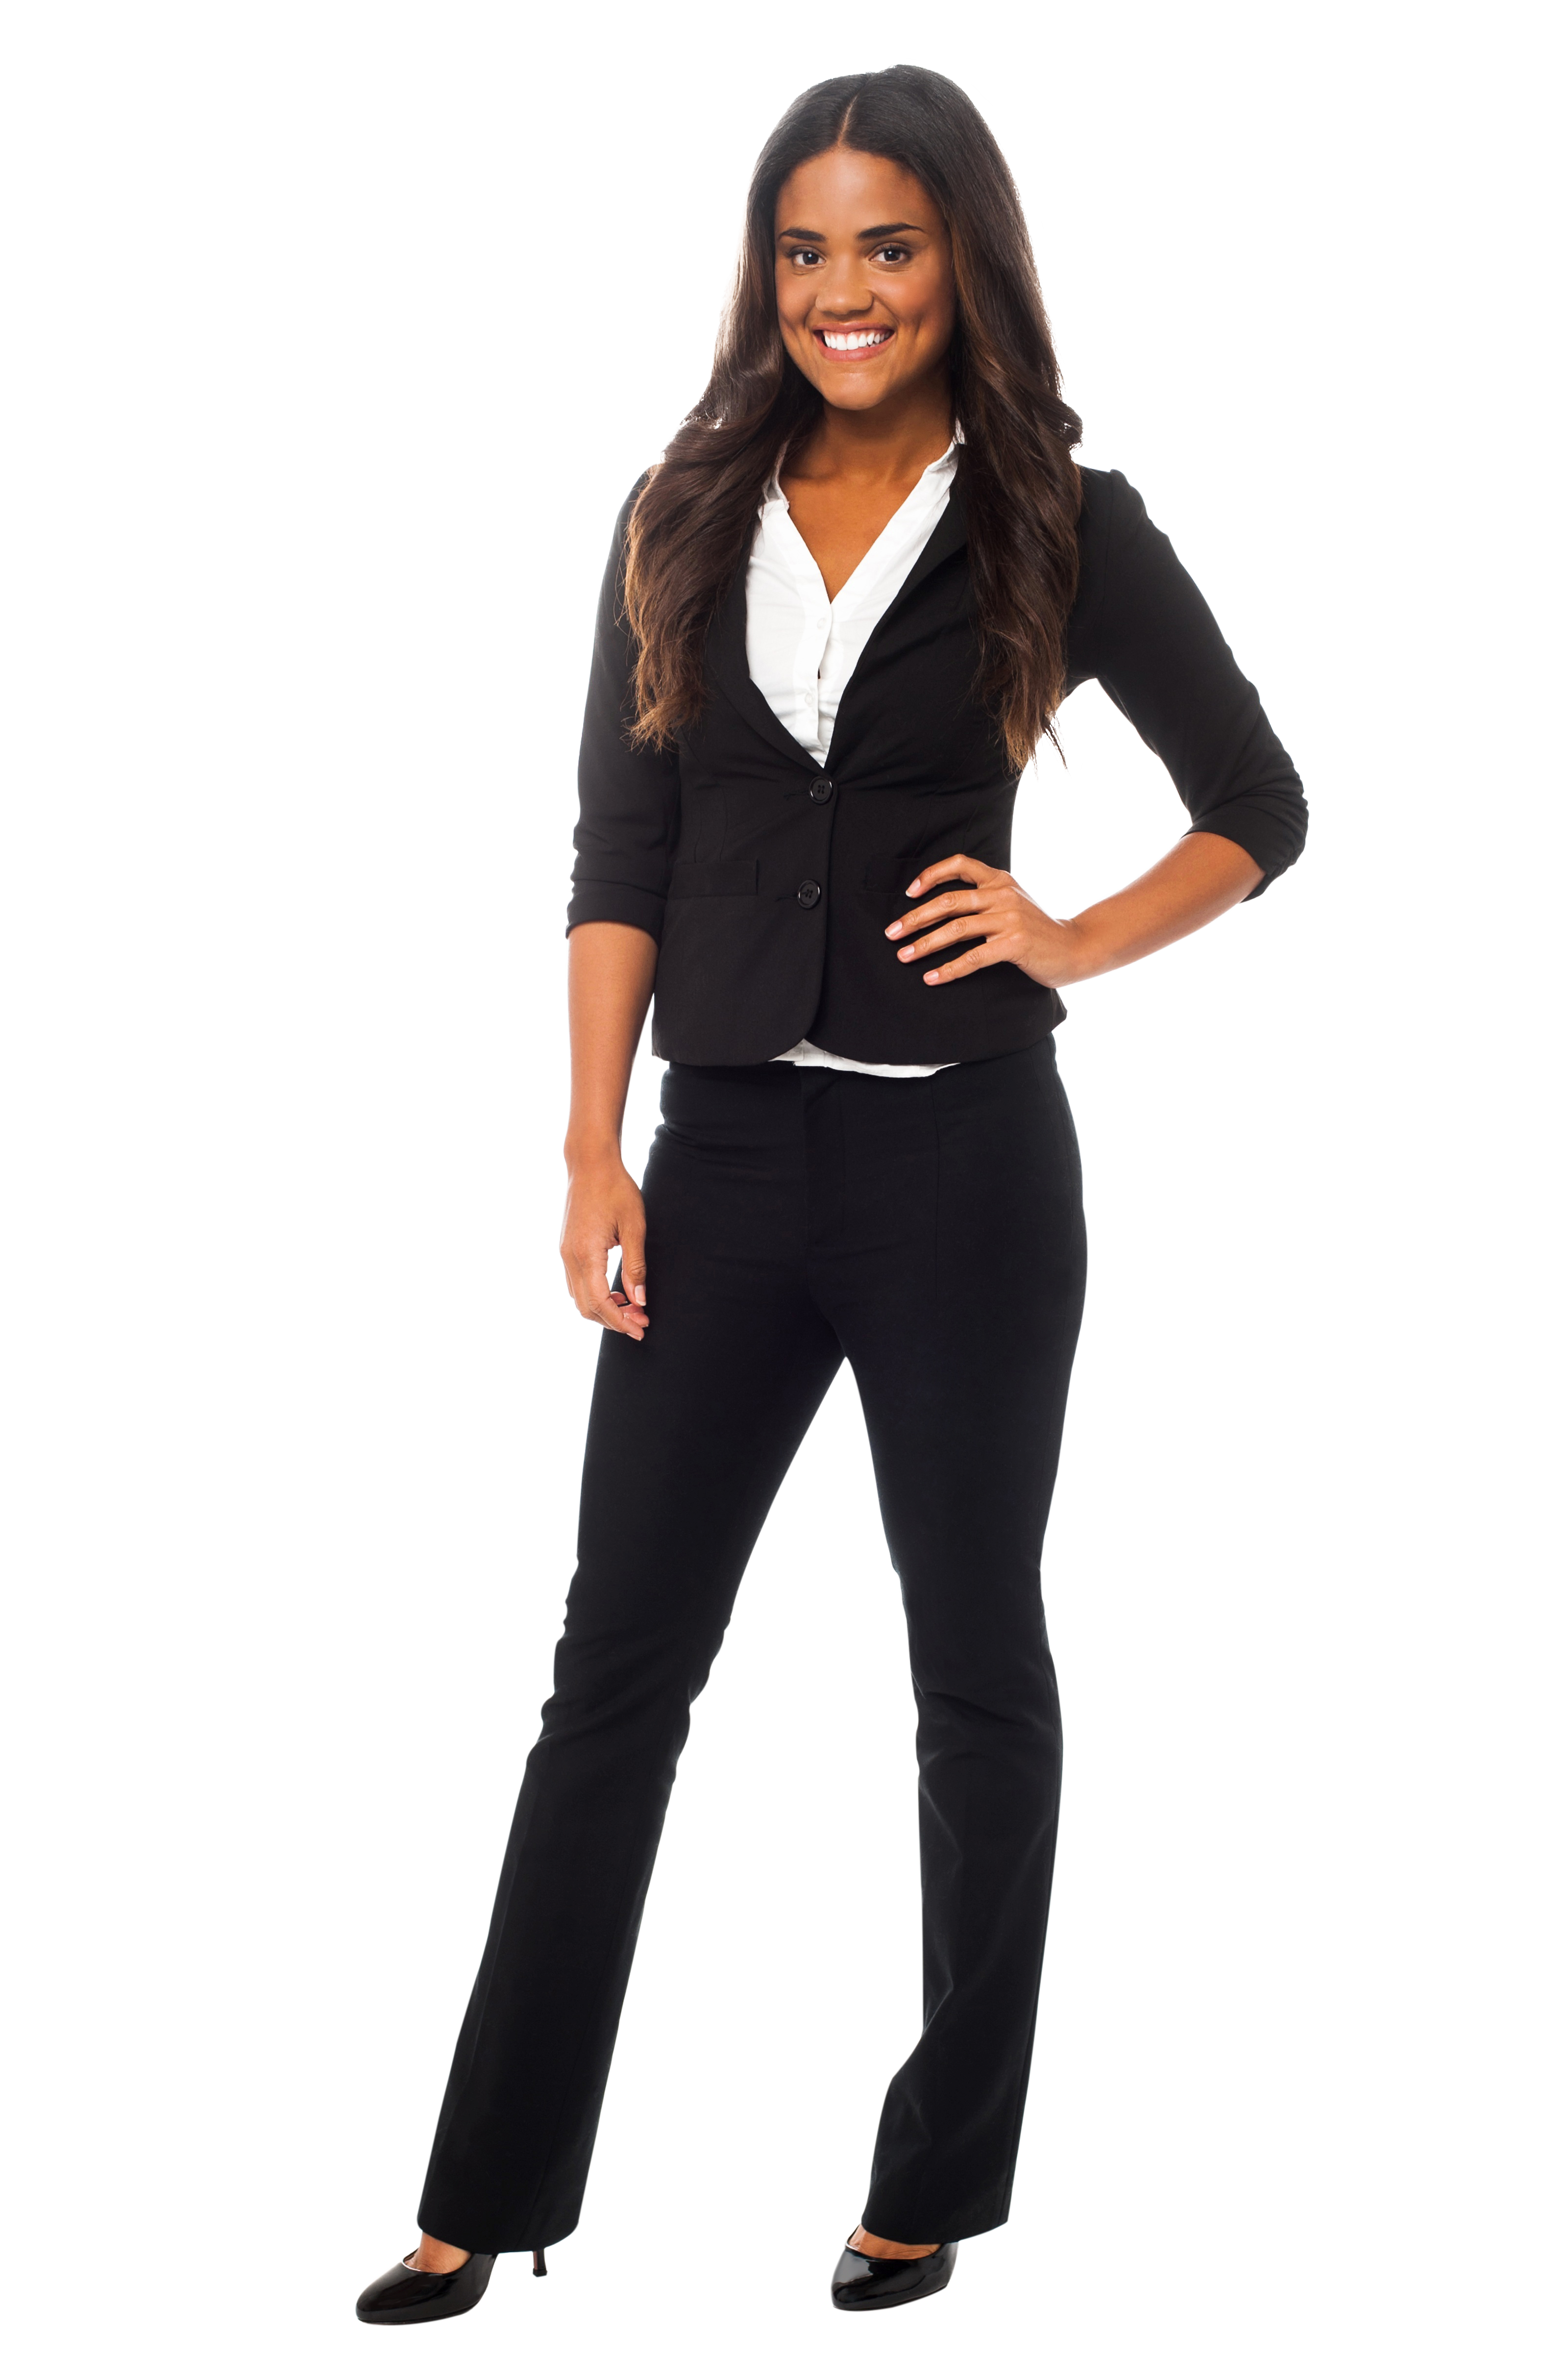 Standing Girl PNG Images Transparent Background.